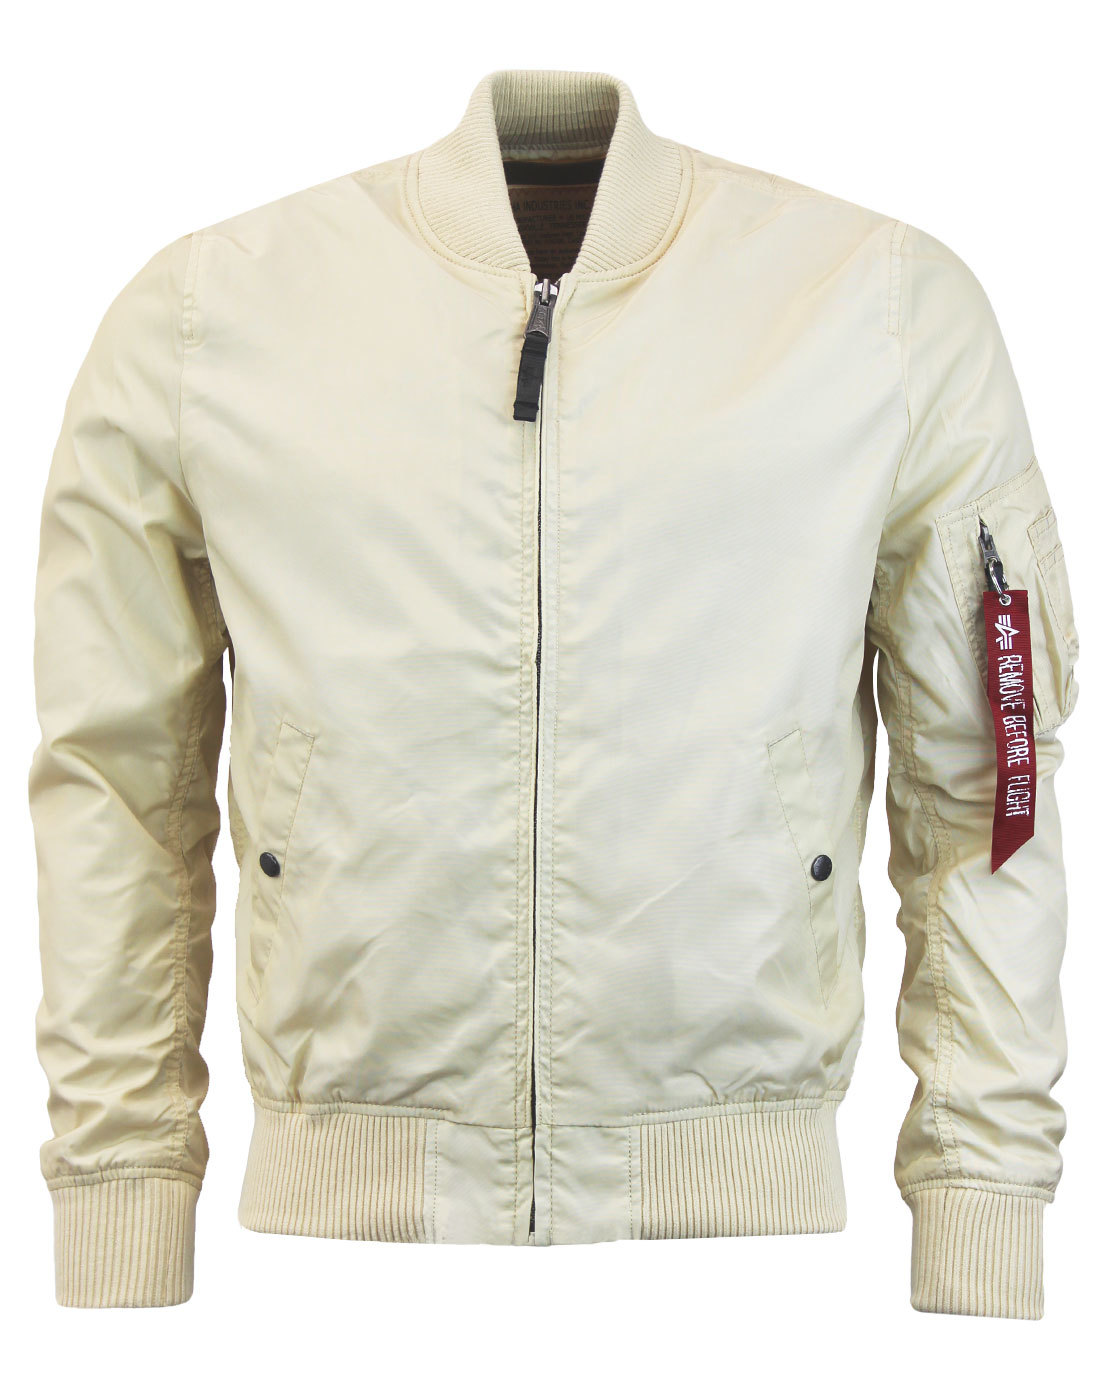 MA1 TT ALPHA INDUSTRIES Mod Bomber Jacket CARAMEL